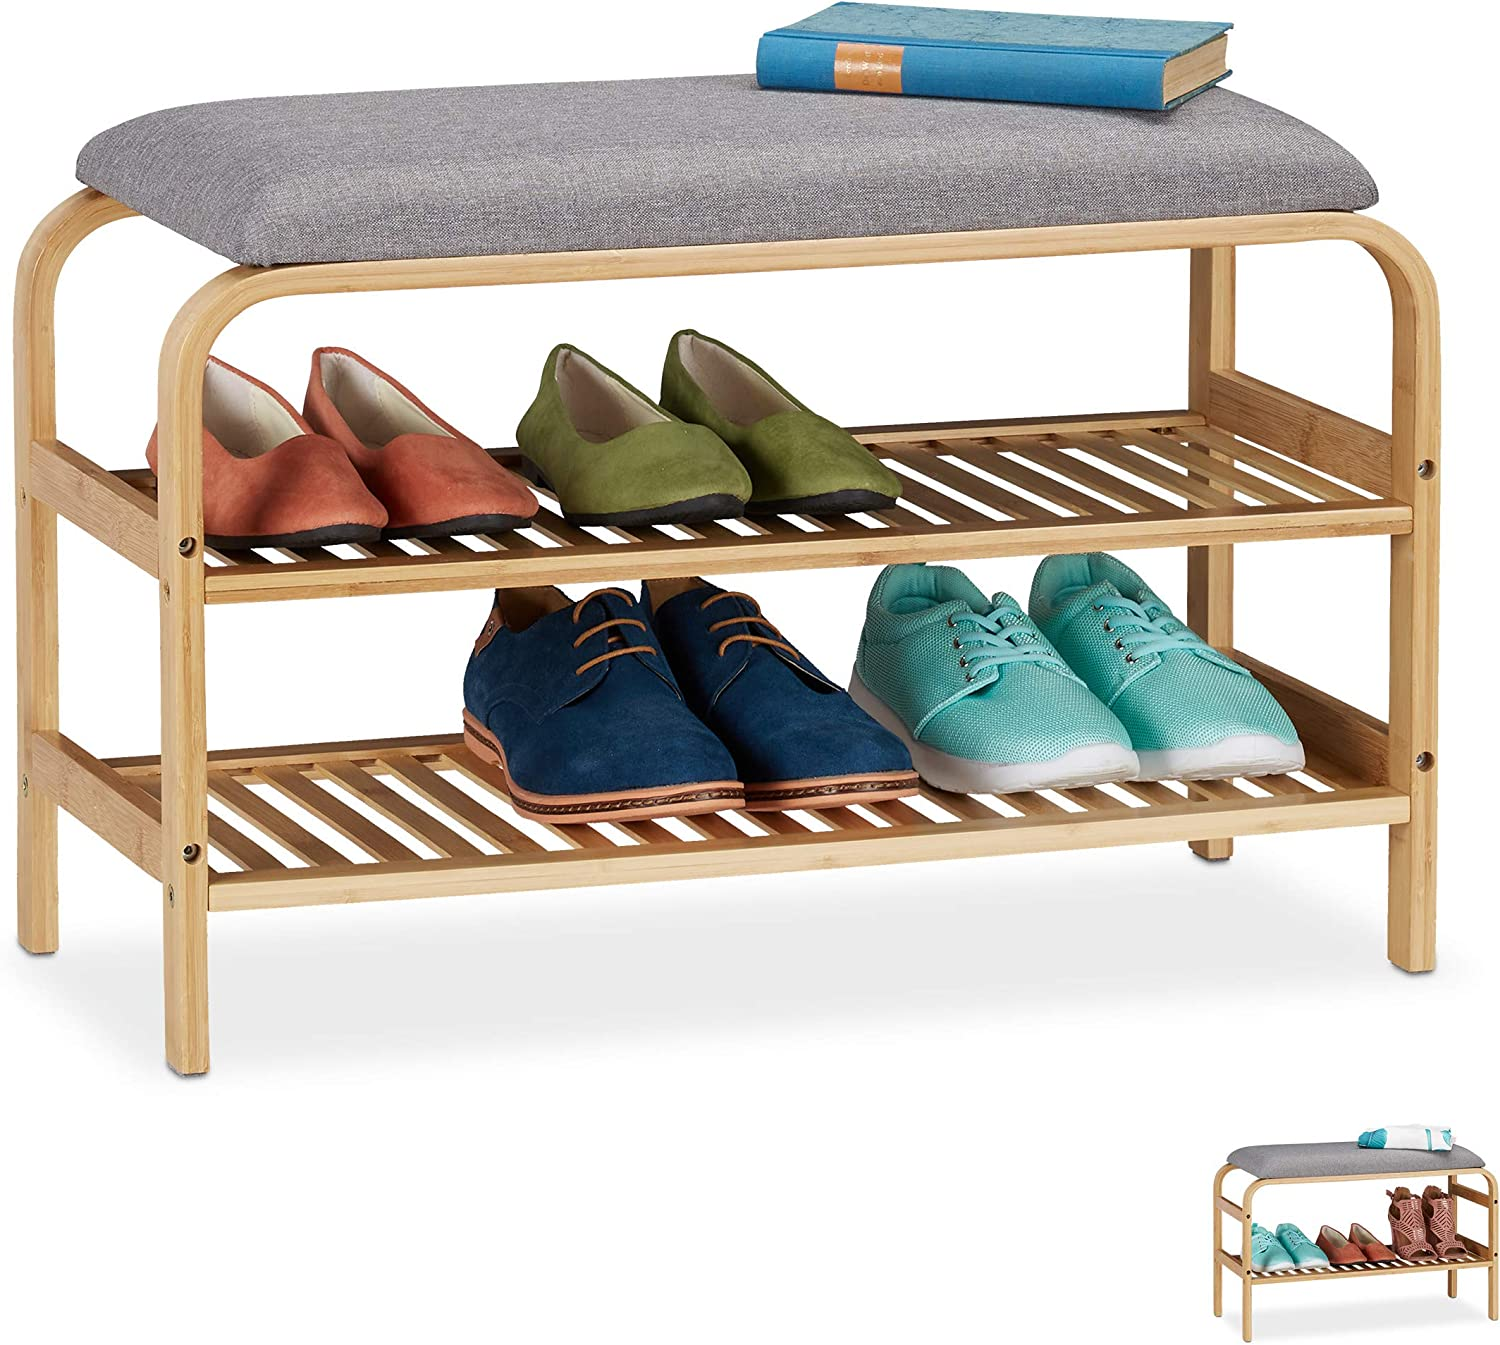 Relaxdays Bench 6 Pairs Padded Seat Hallway And Wardrobe Shoe Storage Hbt 46 X 69 X 30 Cm Natural 2 Compartments 1 Item Amazon Co Uk Kitchen Home